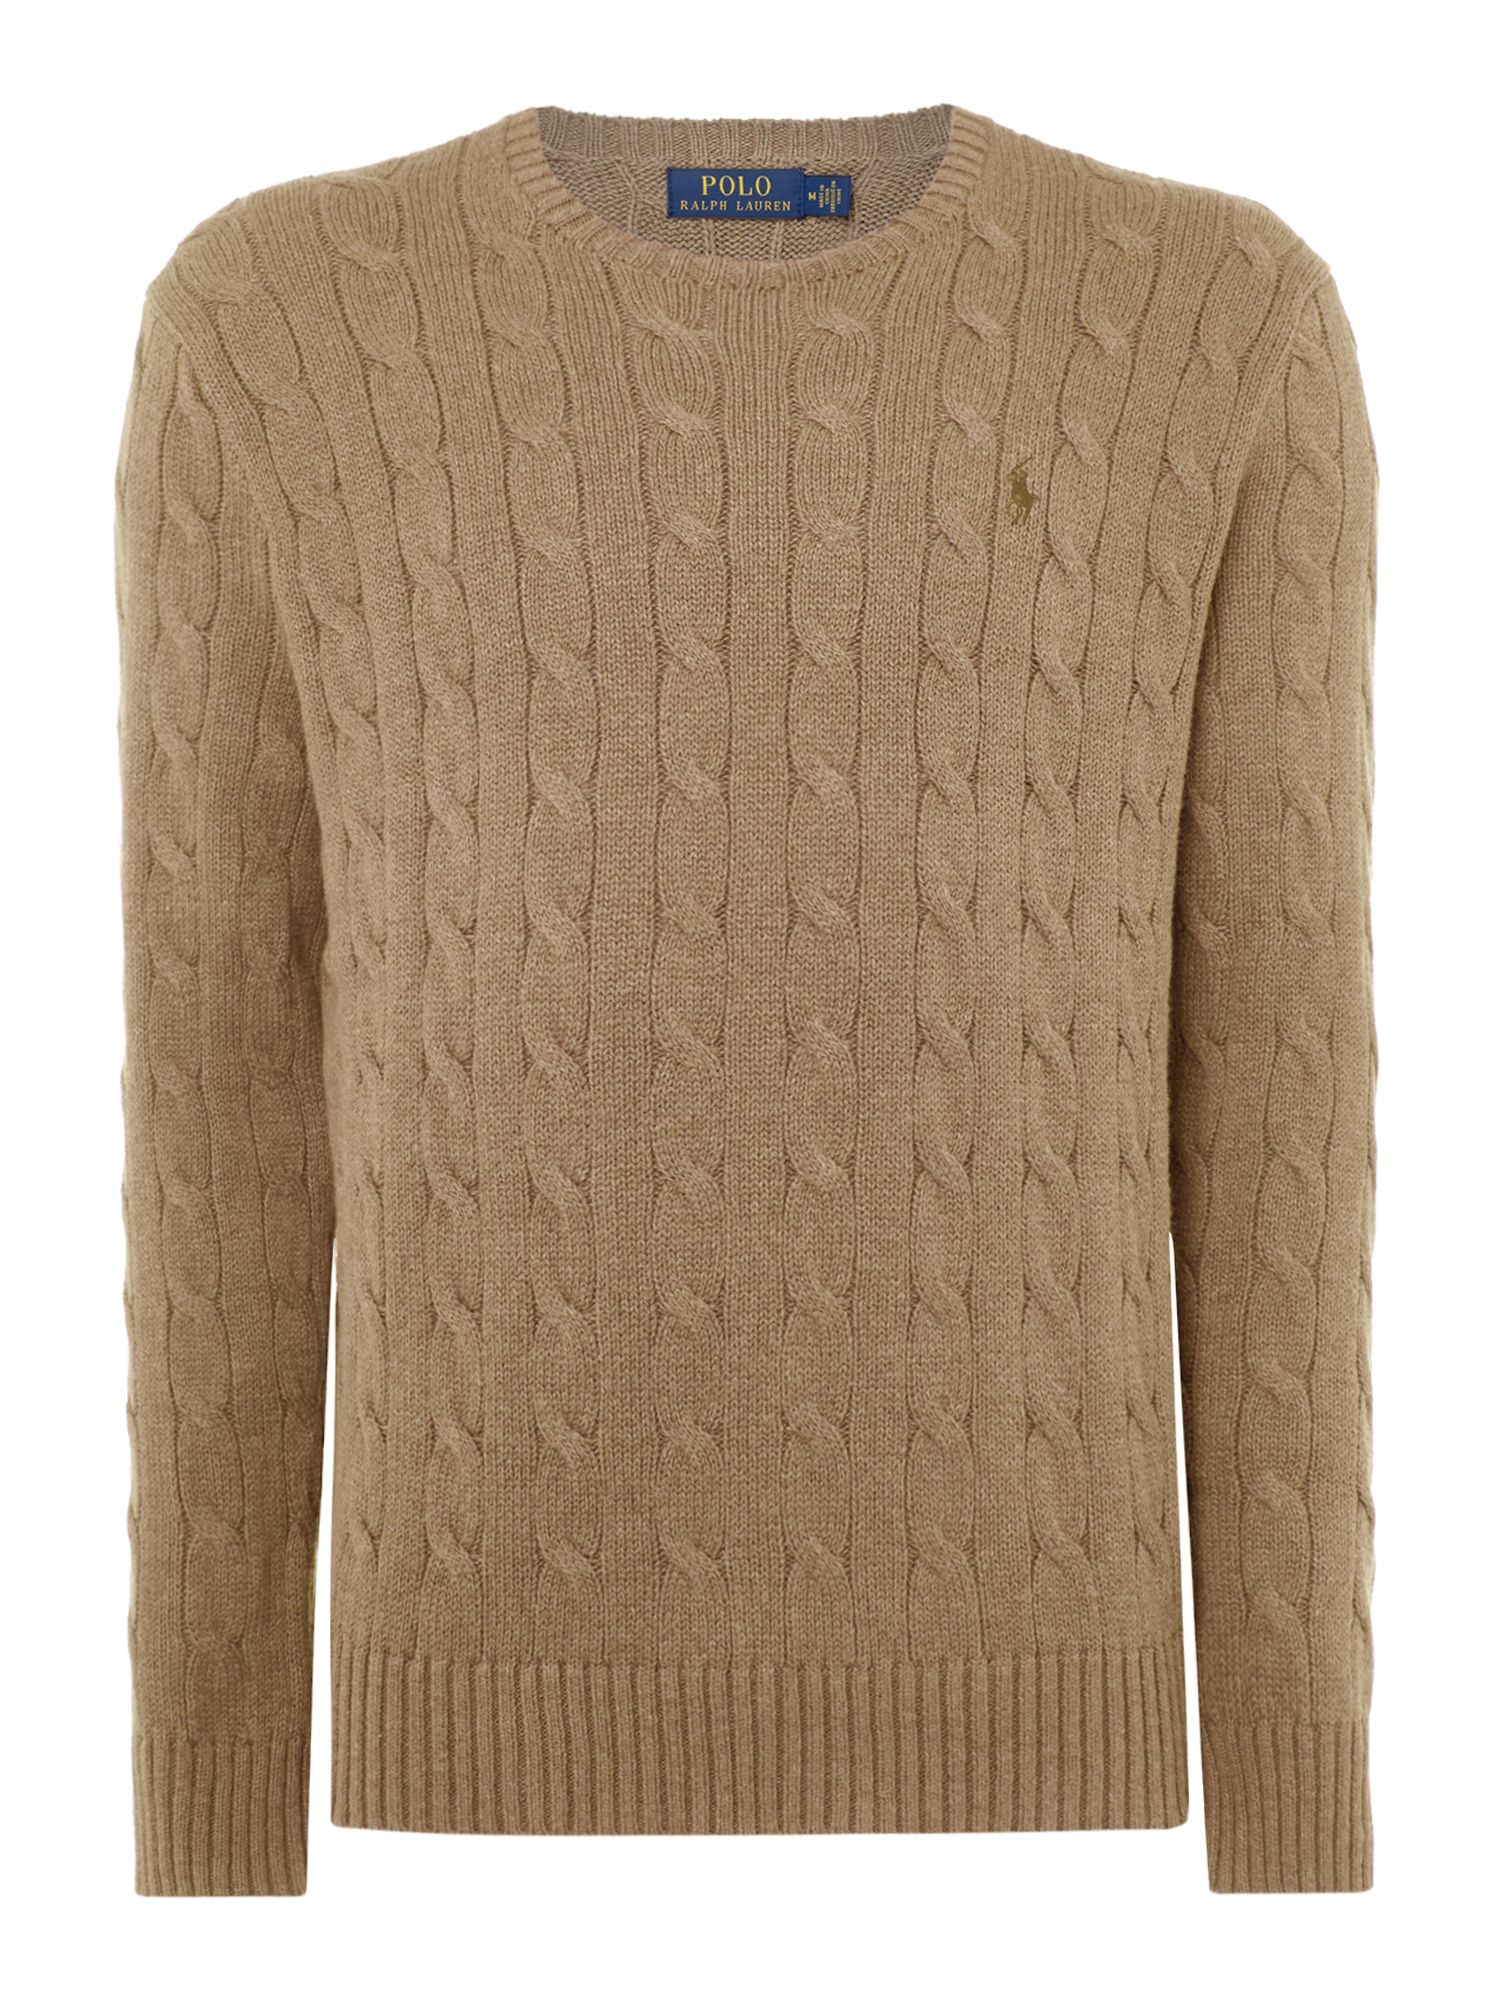 Polo Ralph Lauren Classic Cotton Cable Knit